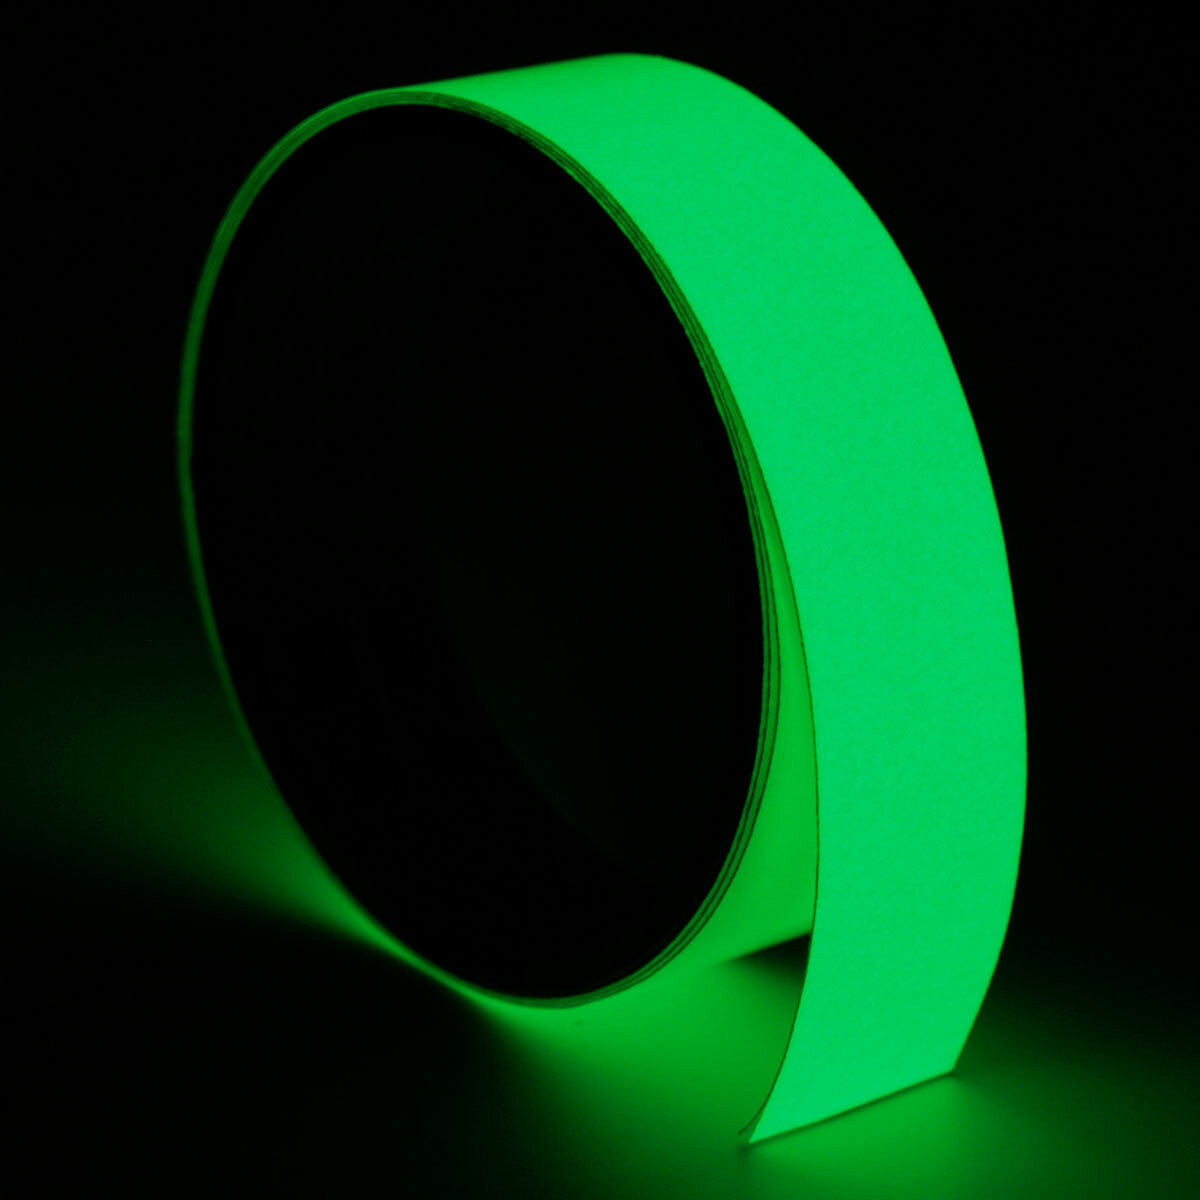 Deko Discount 24 3mx12 15 20 30 40 5 100mm Luminous Tape Self Adhesive Glowing In The Dark Safety Stage Home Decor